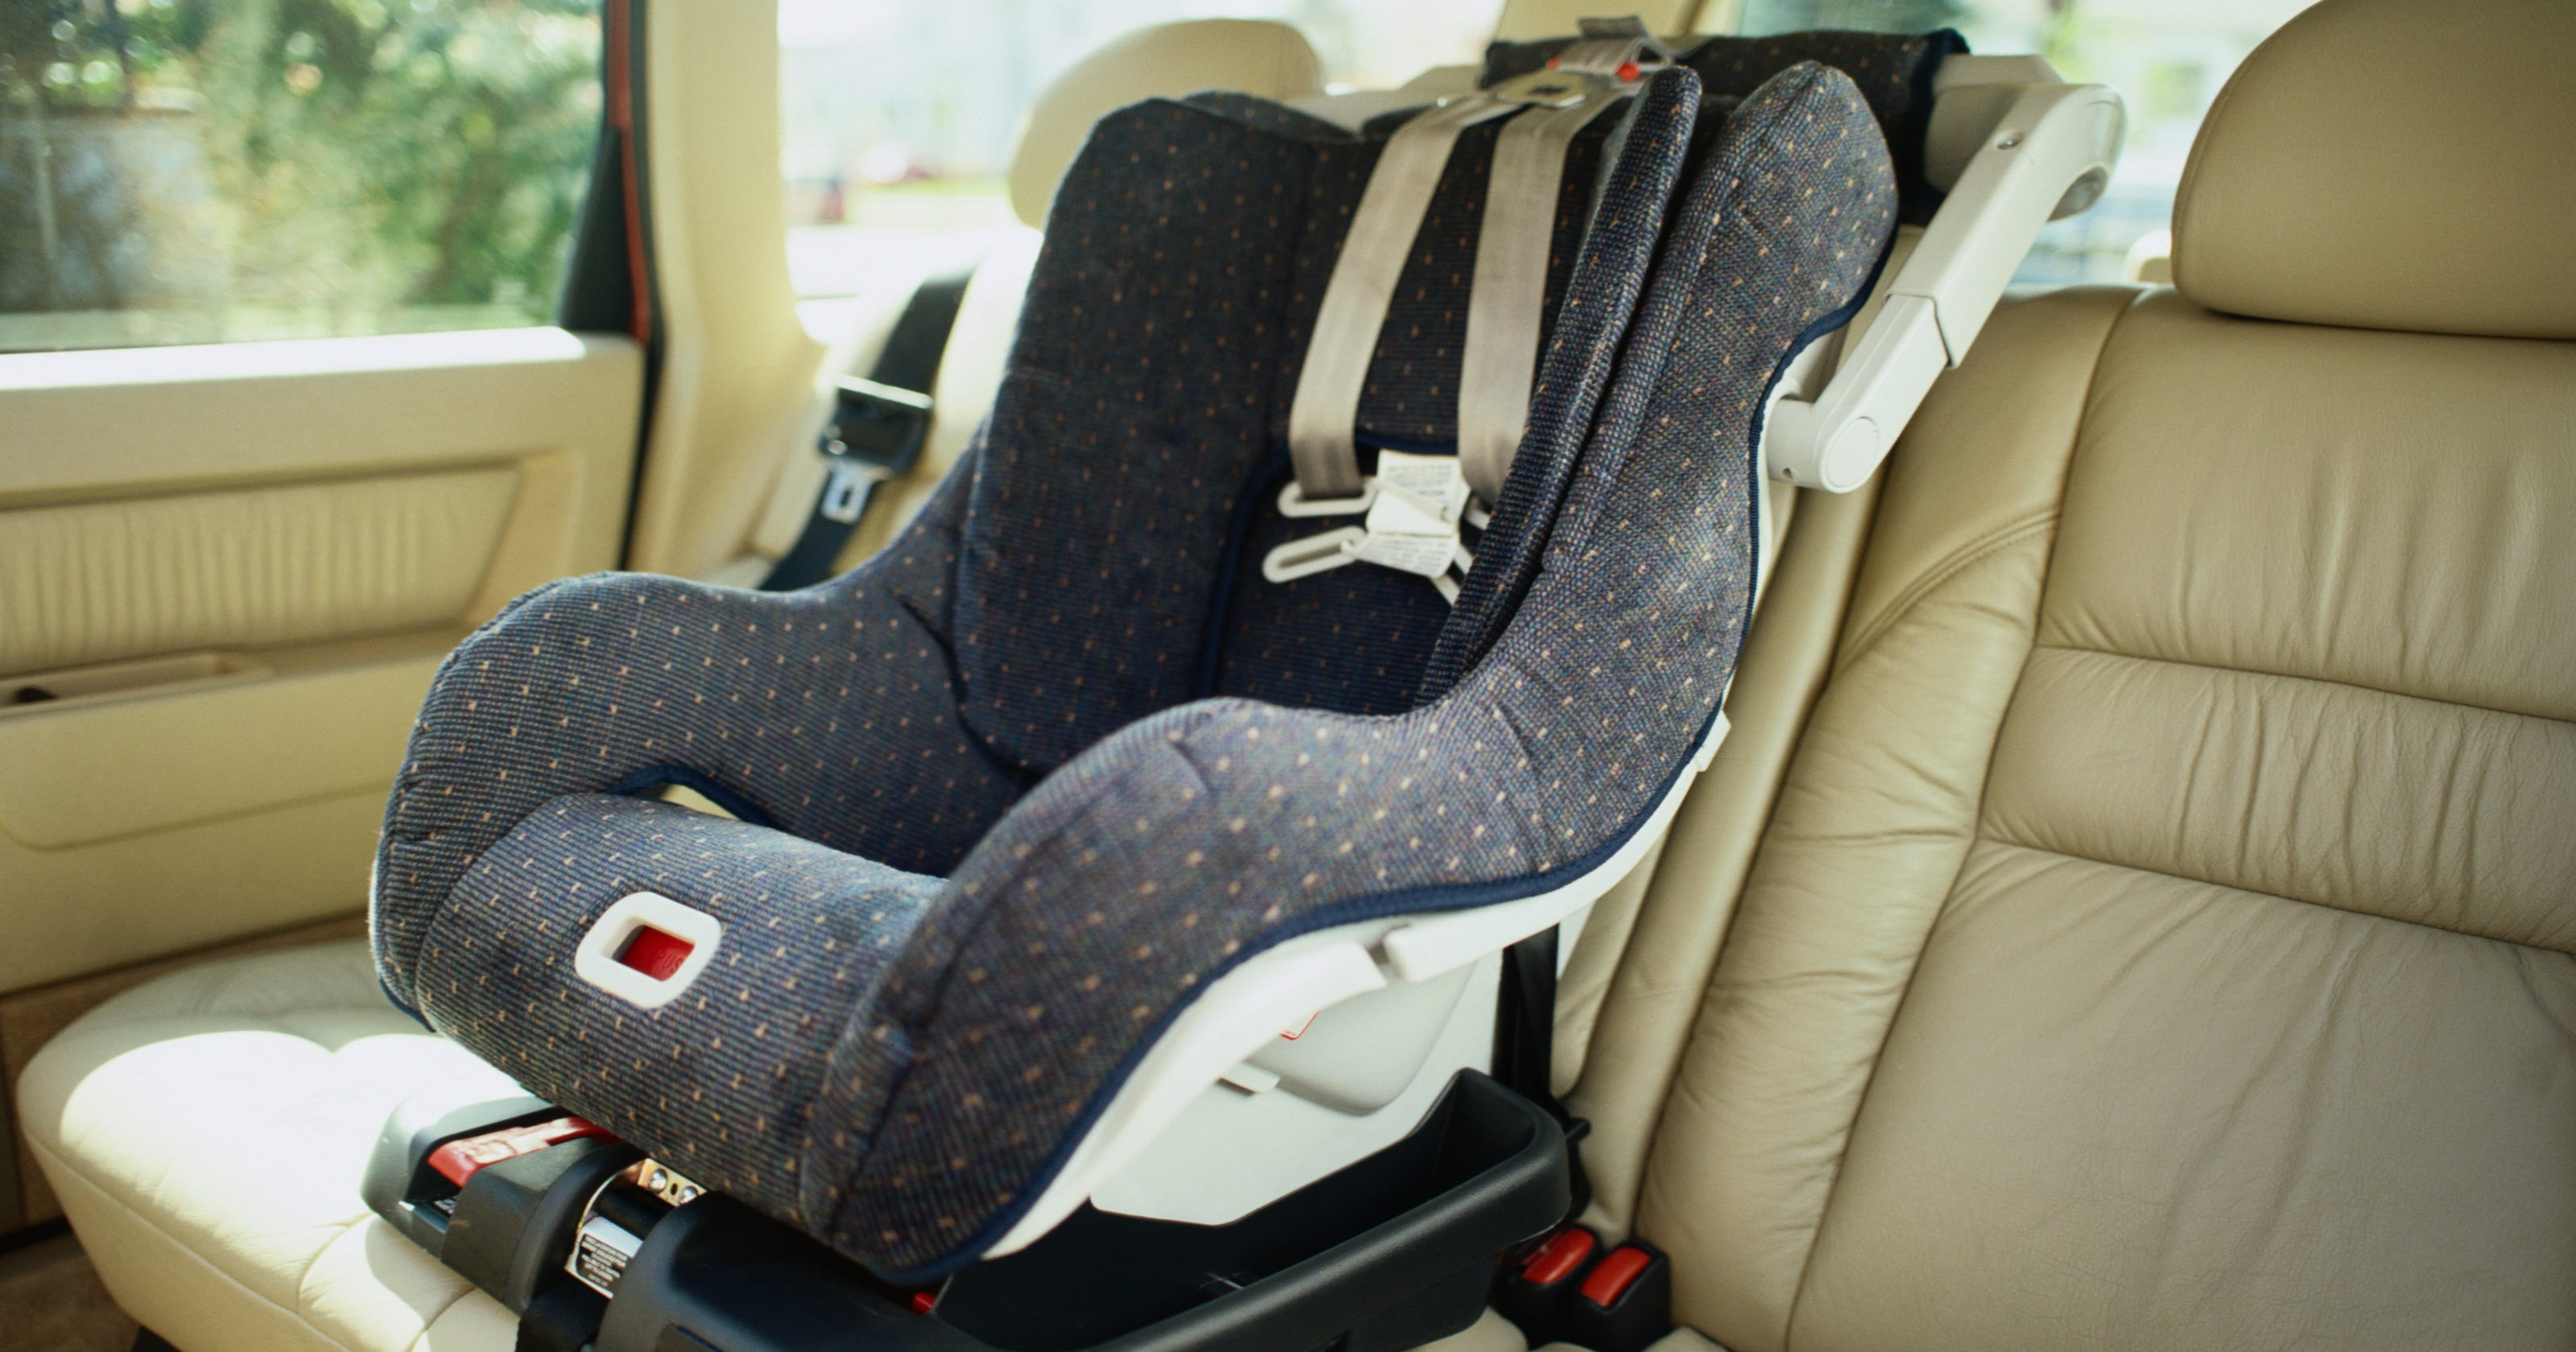 What To Do With Old Car Seats >> Tips On Recycling Old Damaged Car Seats In Phoenix